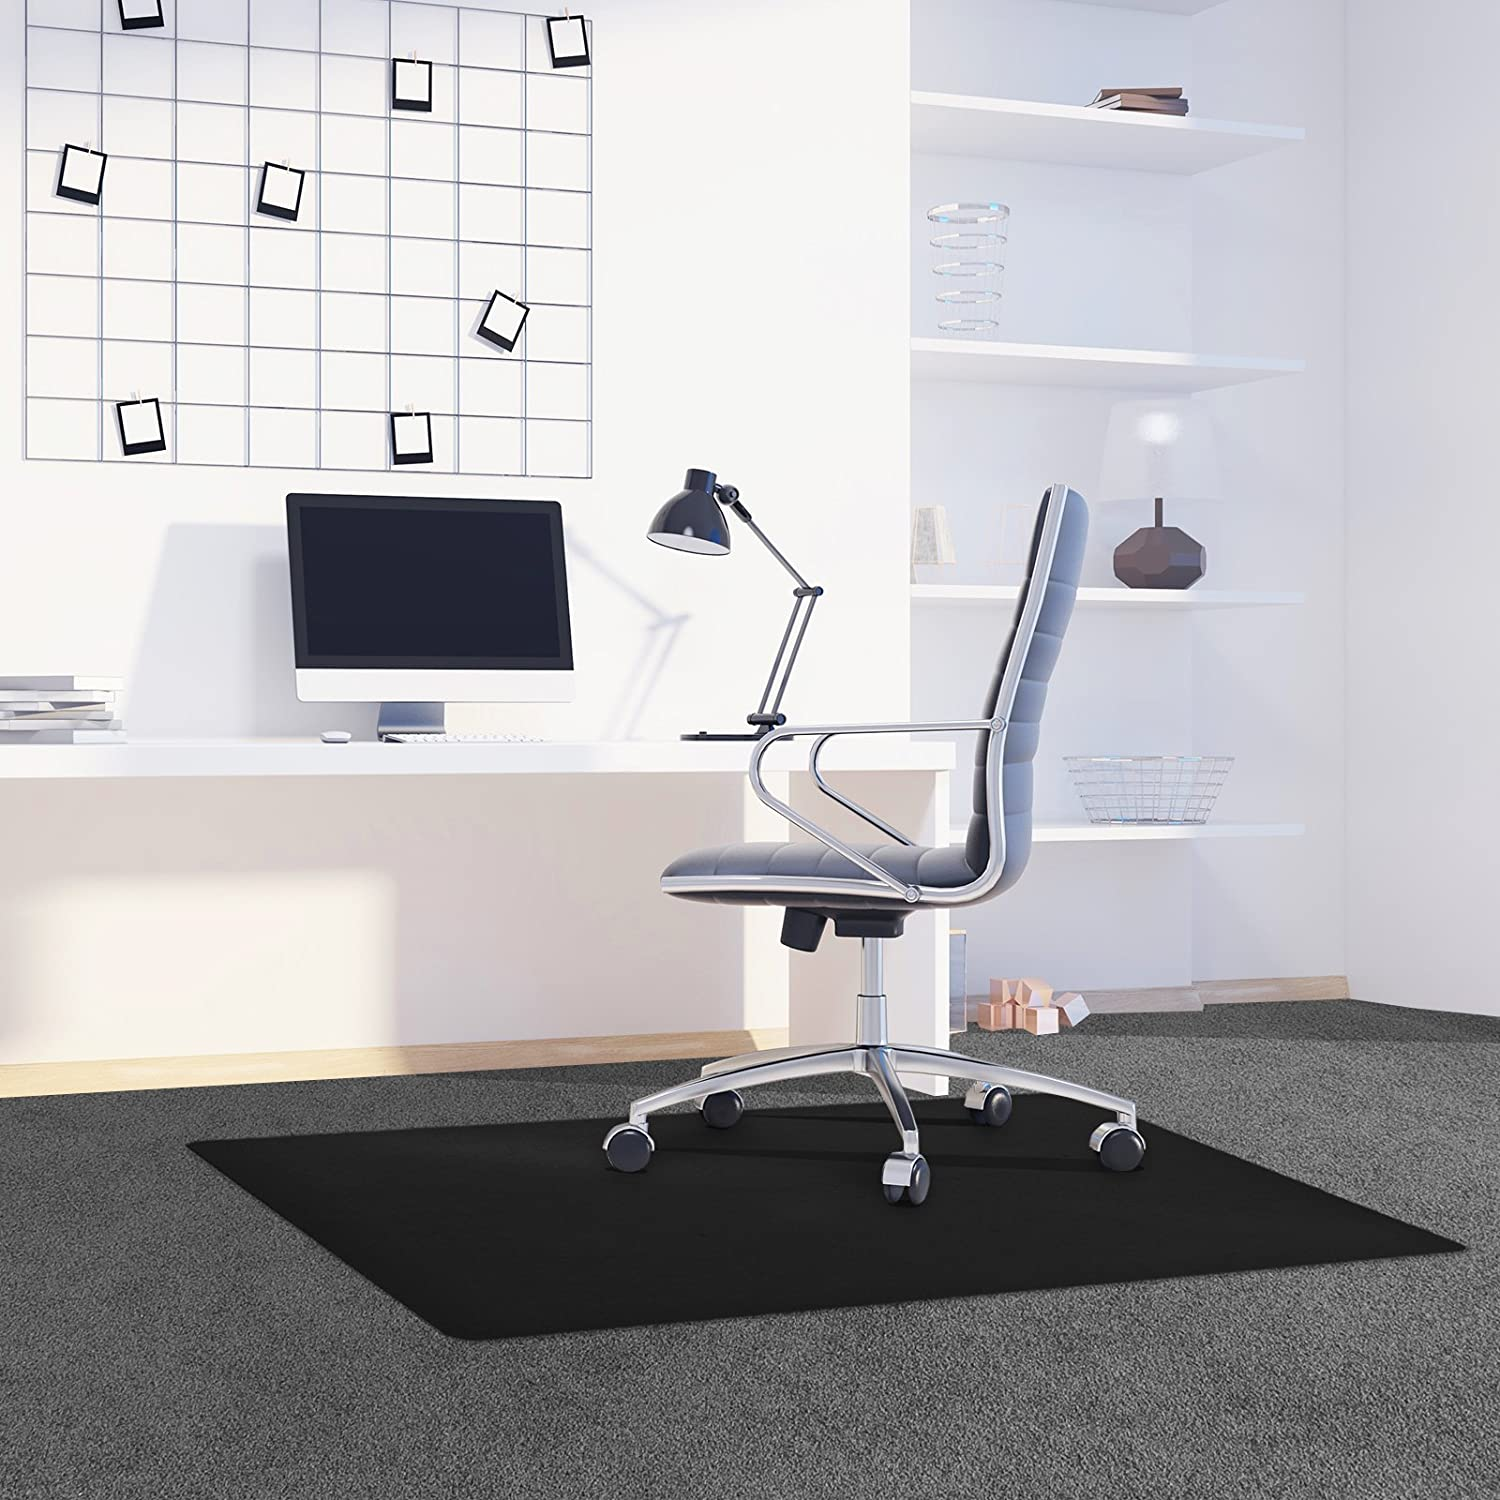 48 x 36,Premium Quality Chair Mat Thick and Sturdy YOUKADA Office Desk Chair Mat for Hard Wood Floor Chair Mat Floor PVC Clear Protection Floor Mat,Chair PVC Plastic Mat